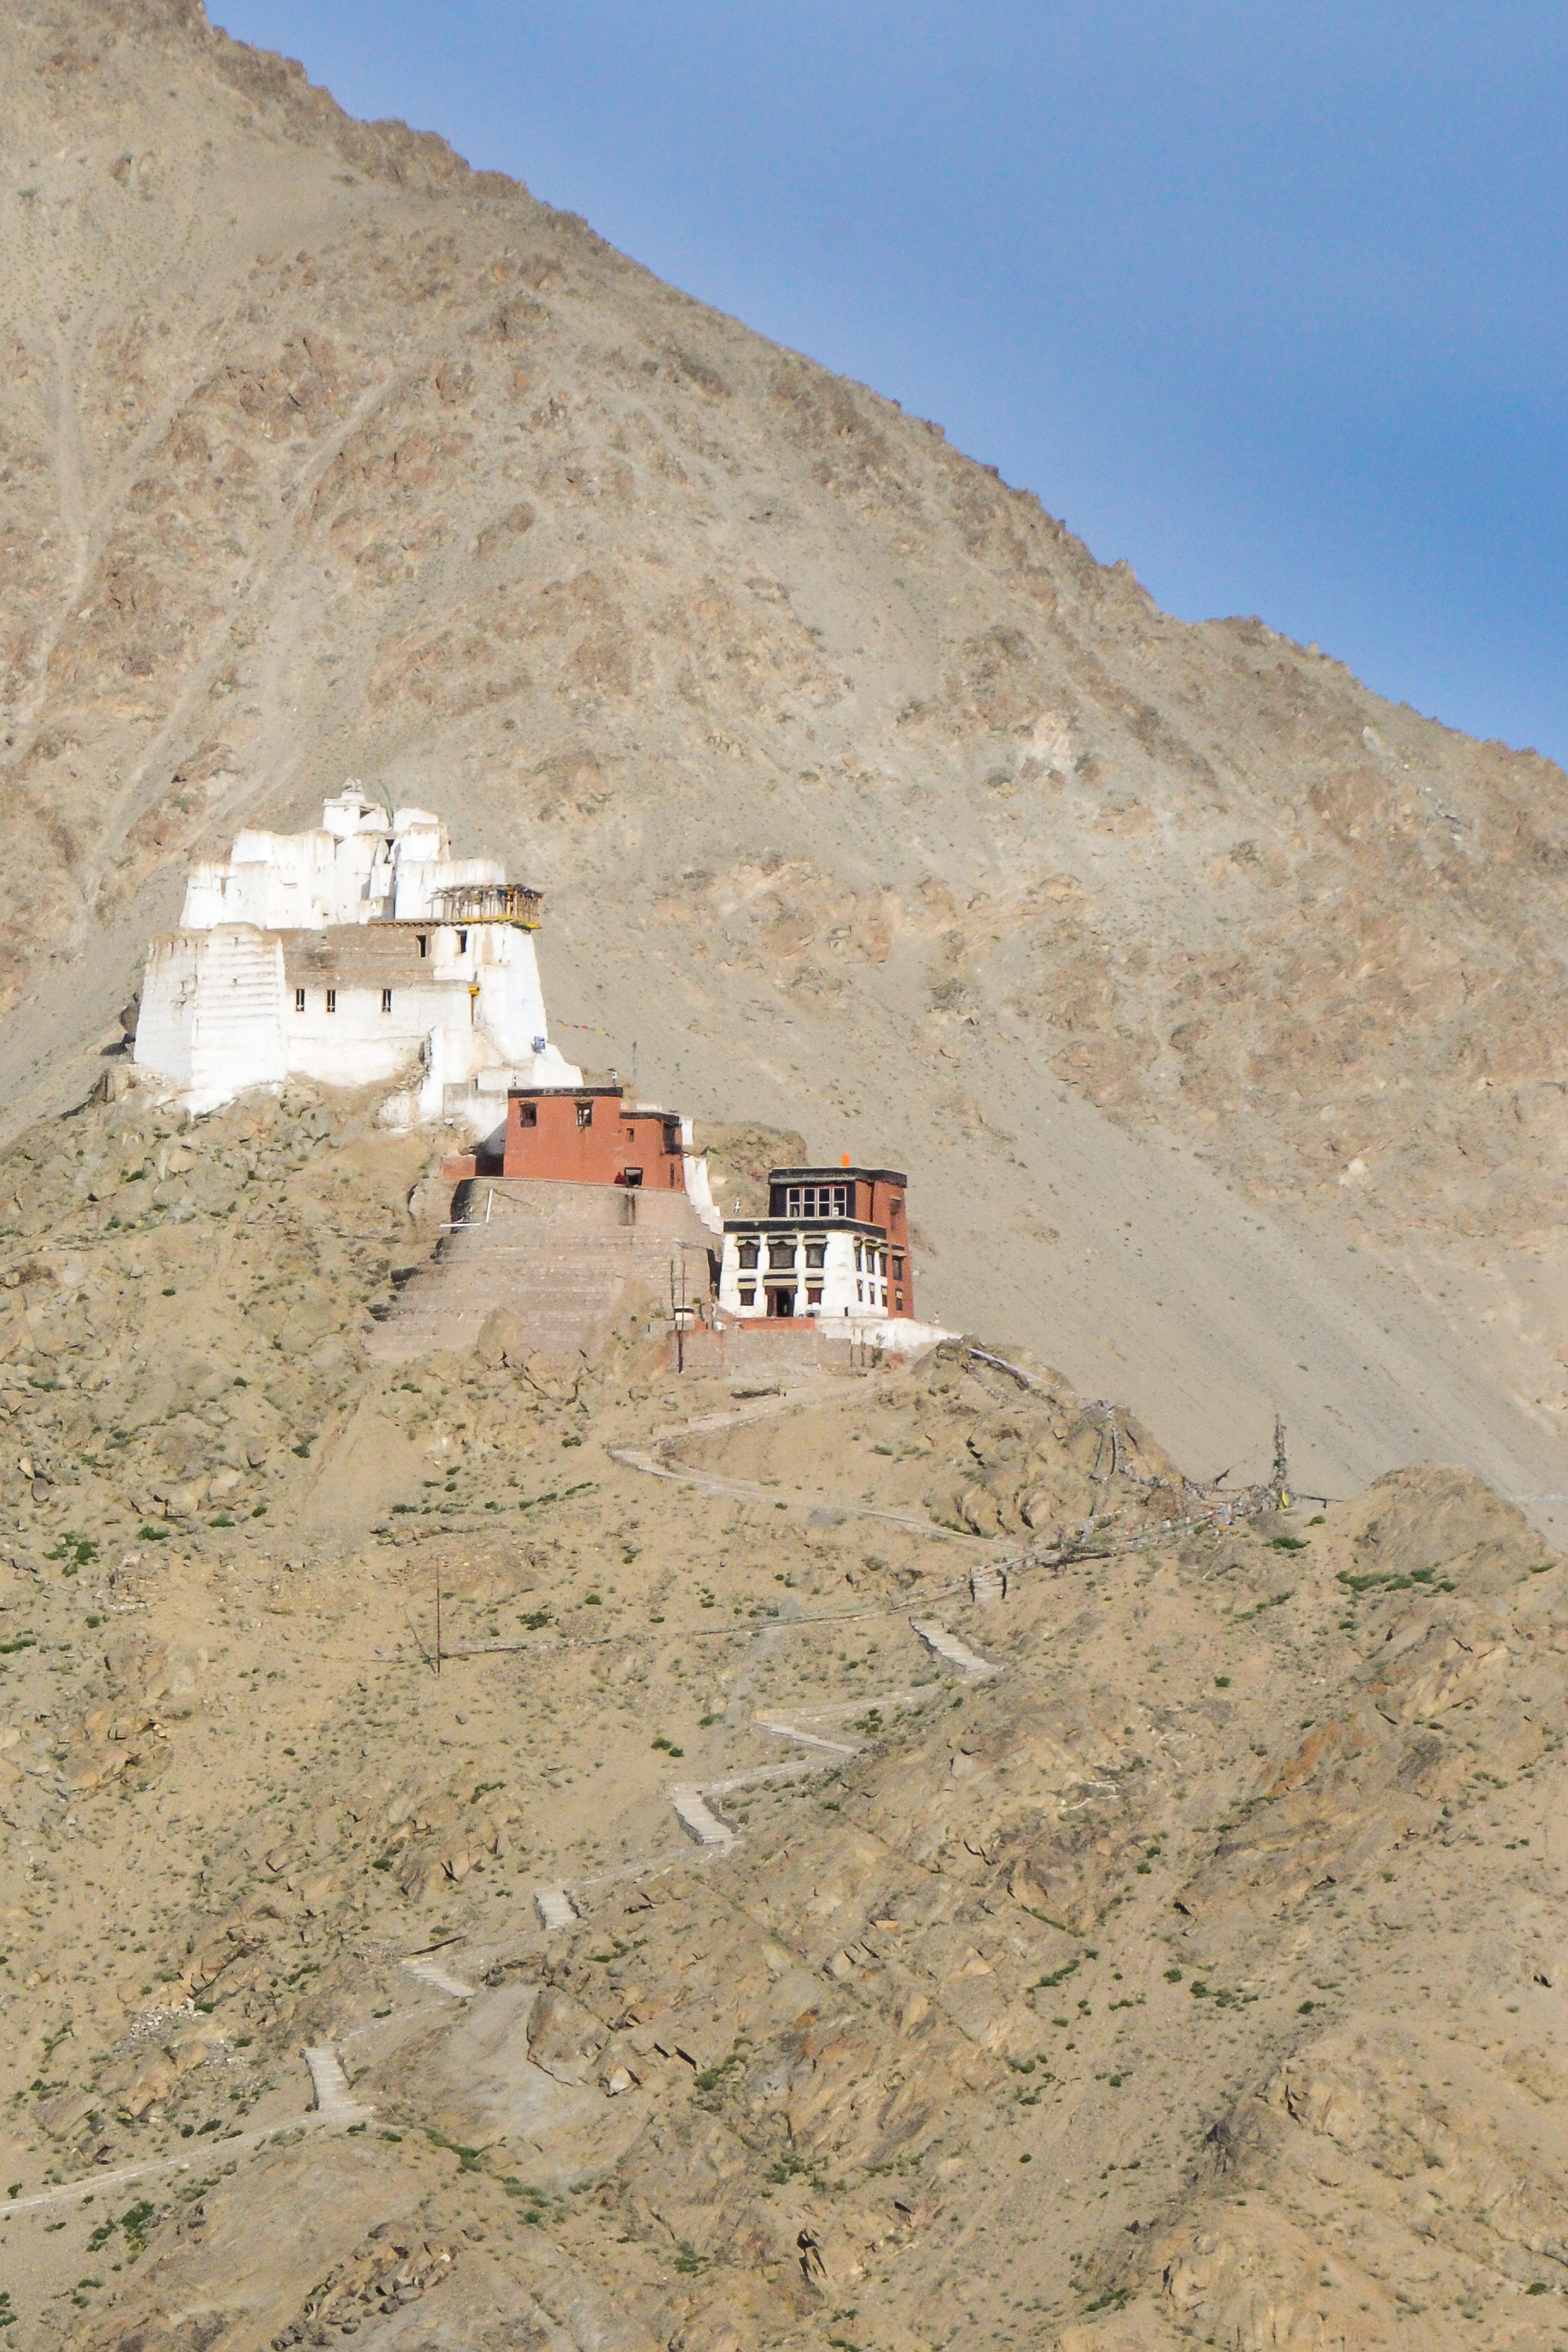 Buddhist temple perched high in the Himalaya.